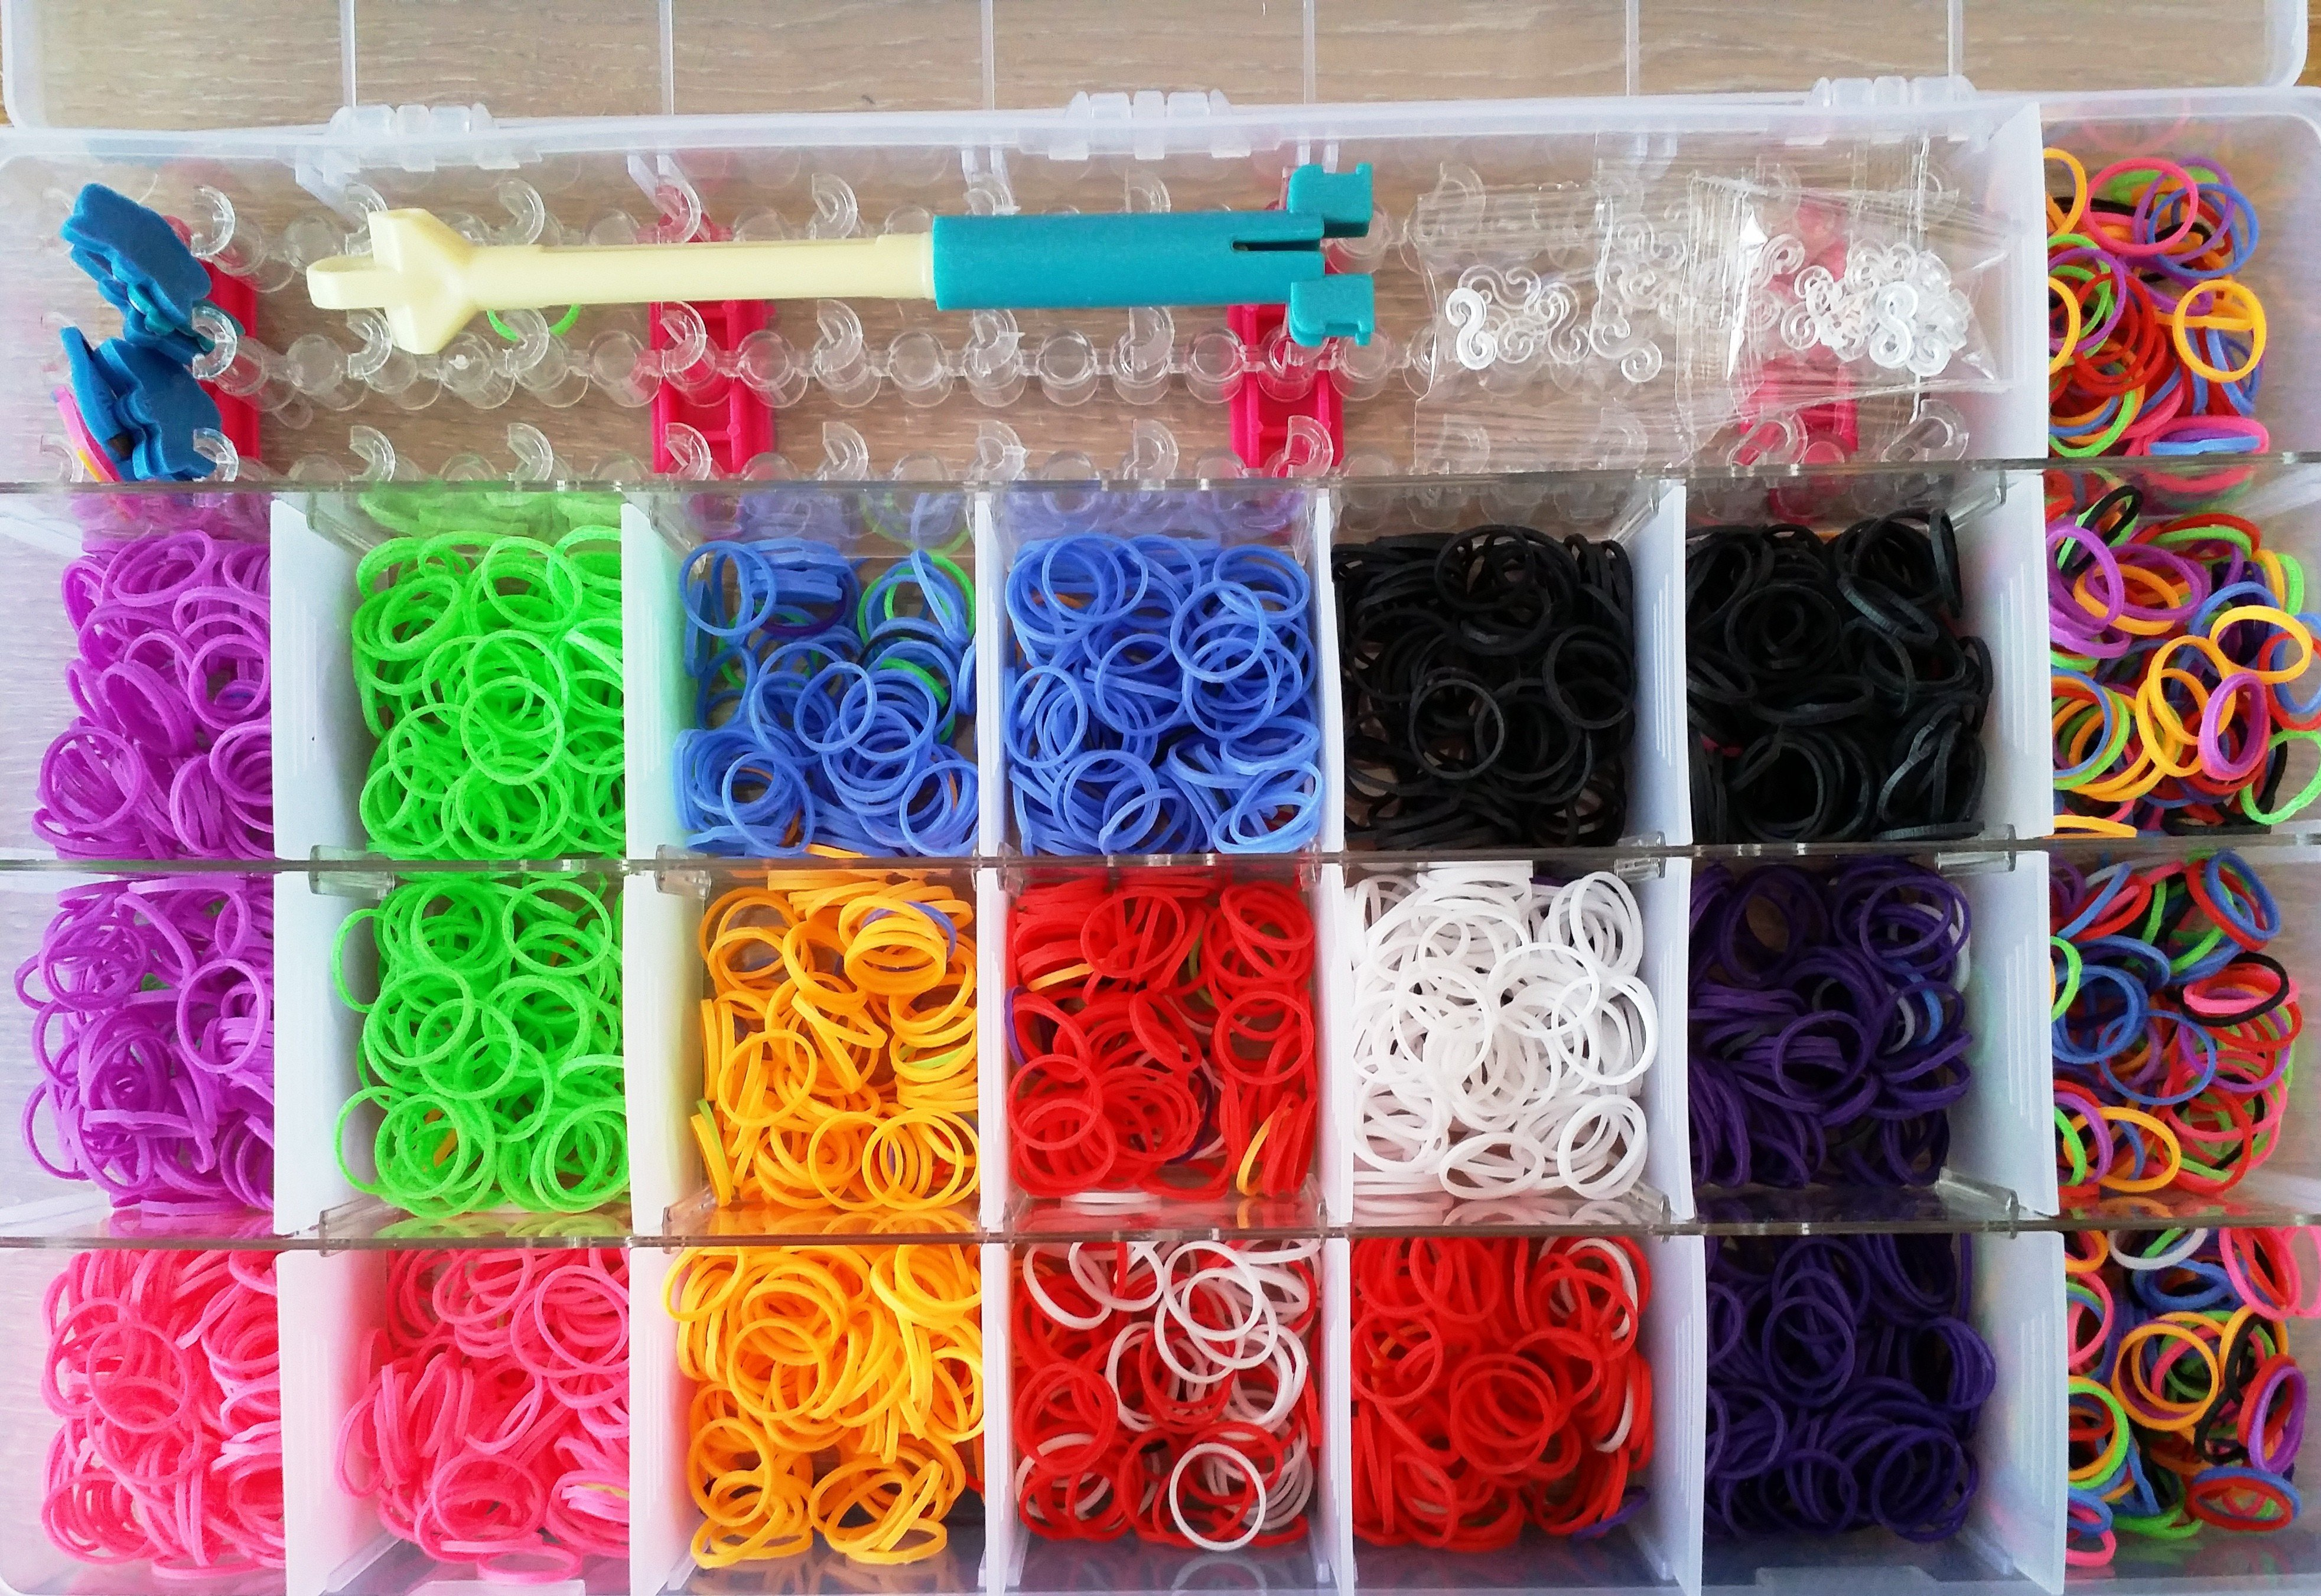 1 X 4000 Bands Loom Band Kit With Adjustable Loom Board S Sclips Pro Tool And Charms